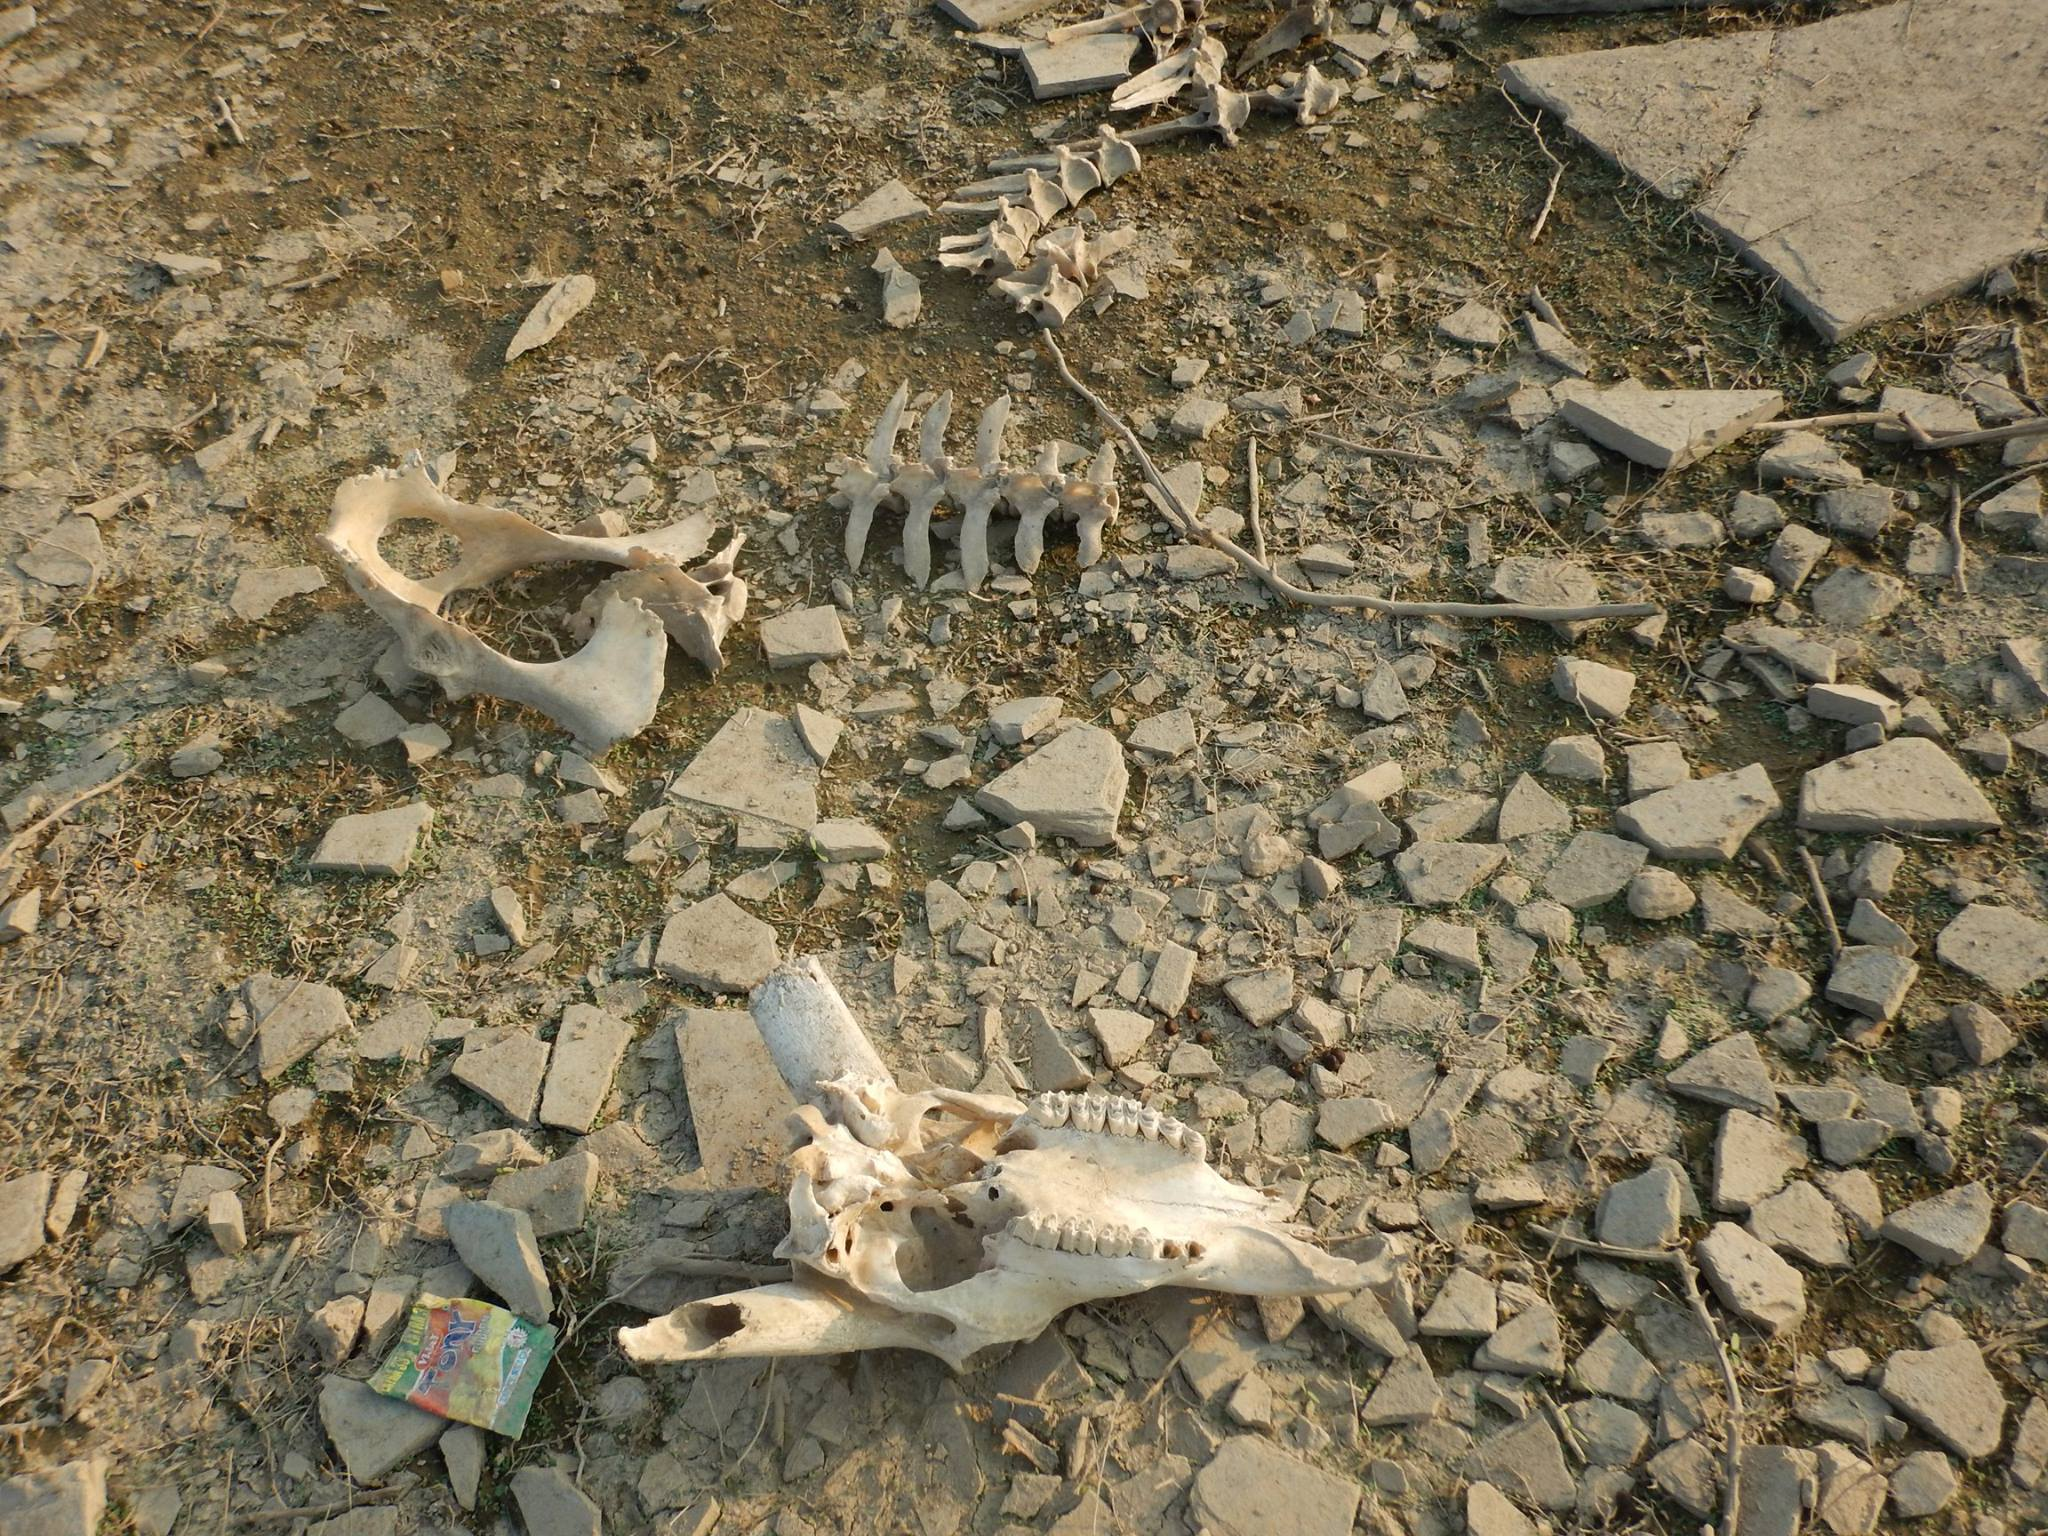 More Cattle Skeleton in the ghost town